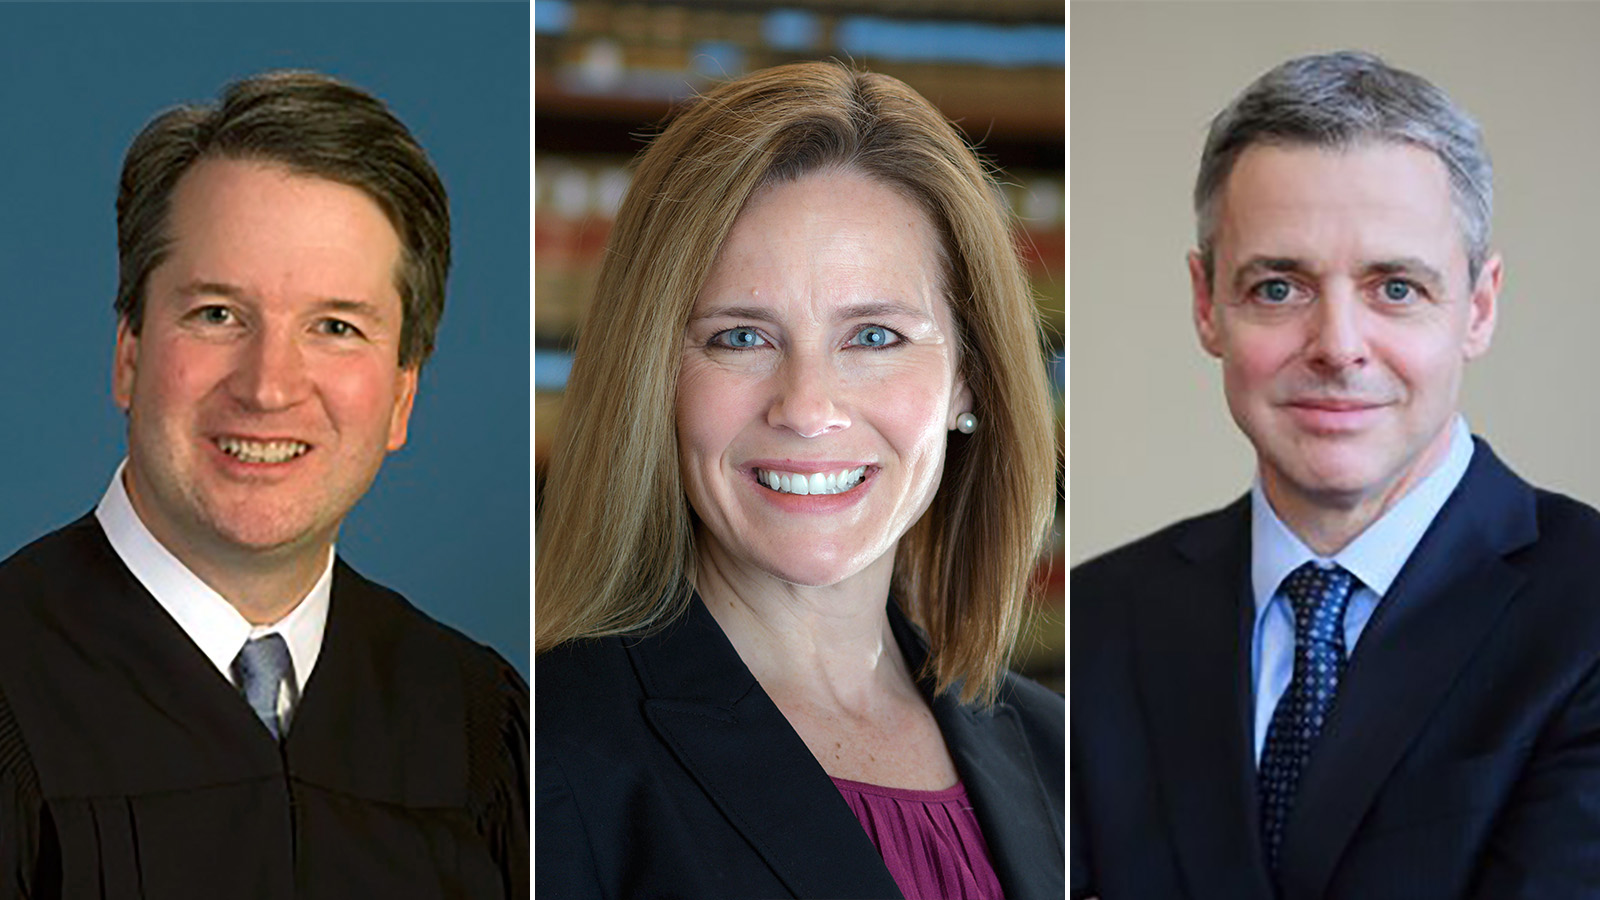 Potential Supreme Court nominees Brett Kavanaugh, from left, Amy Coney Barrett, and Raymond Kethledge.